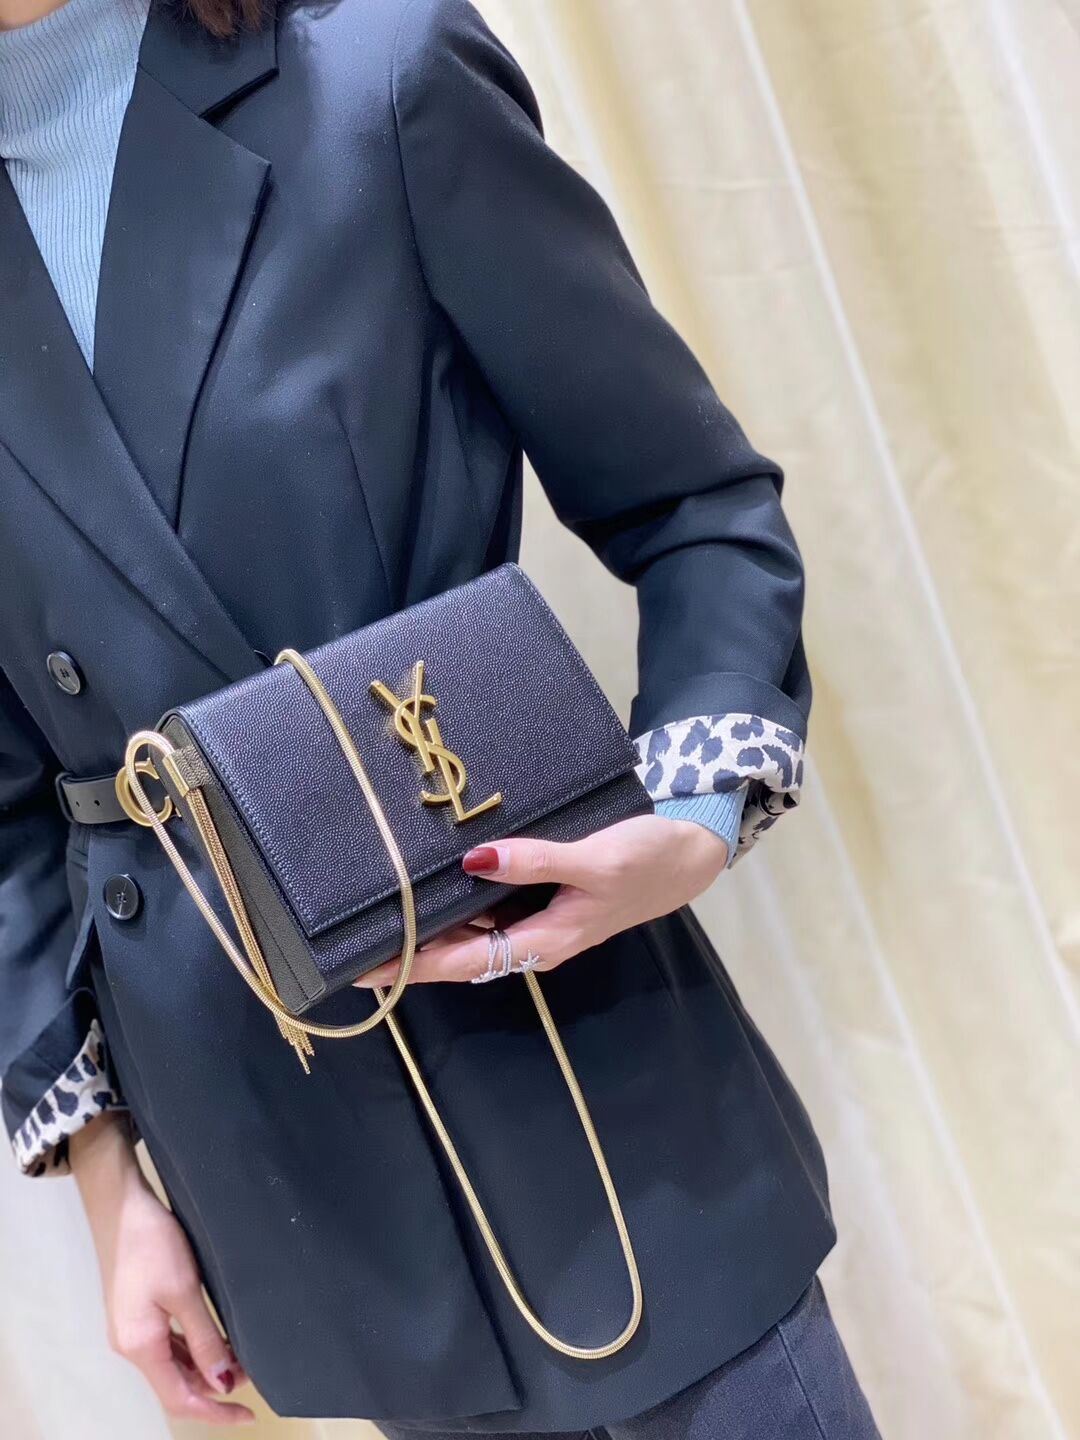 Yves Saint Laurent Kate mini Original leather Shoulder Bag Y593122 Black